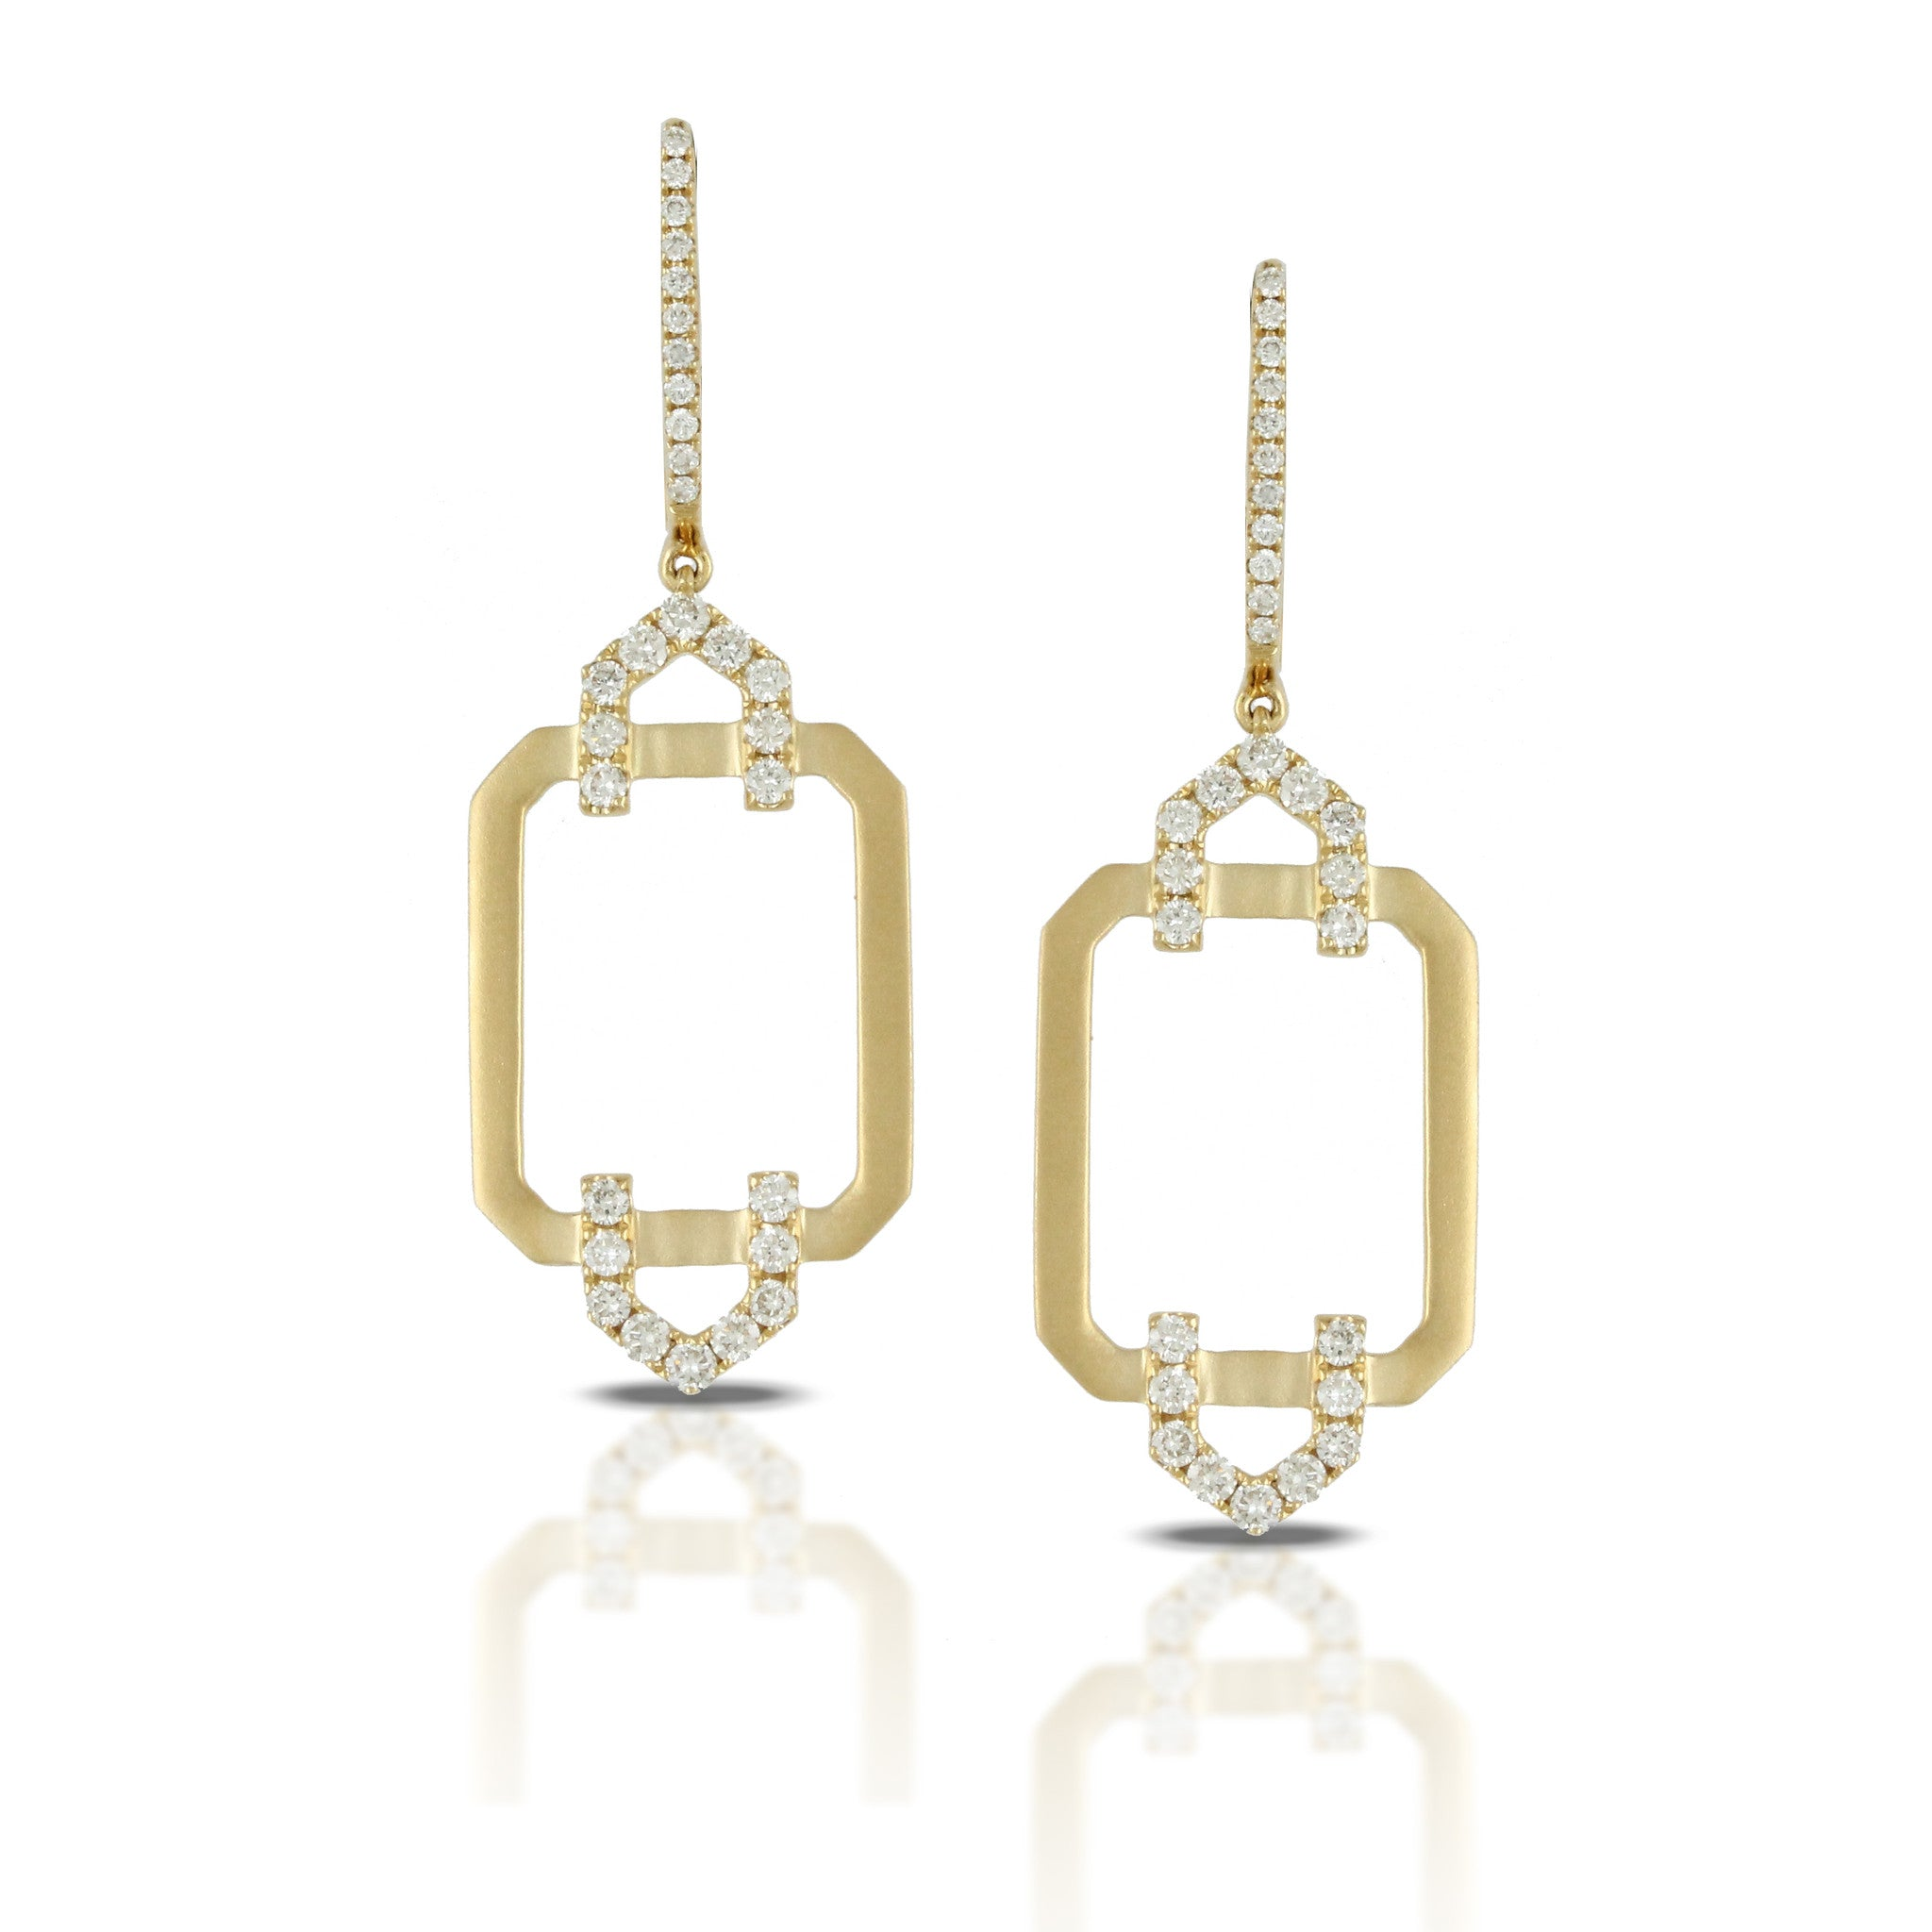 Doves Ladies 18k Yellow Gold Diamond Pave Earrings by Doron Paloma